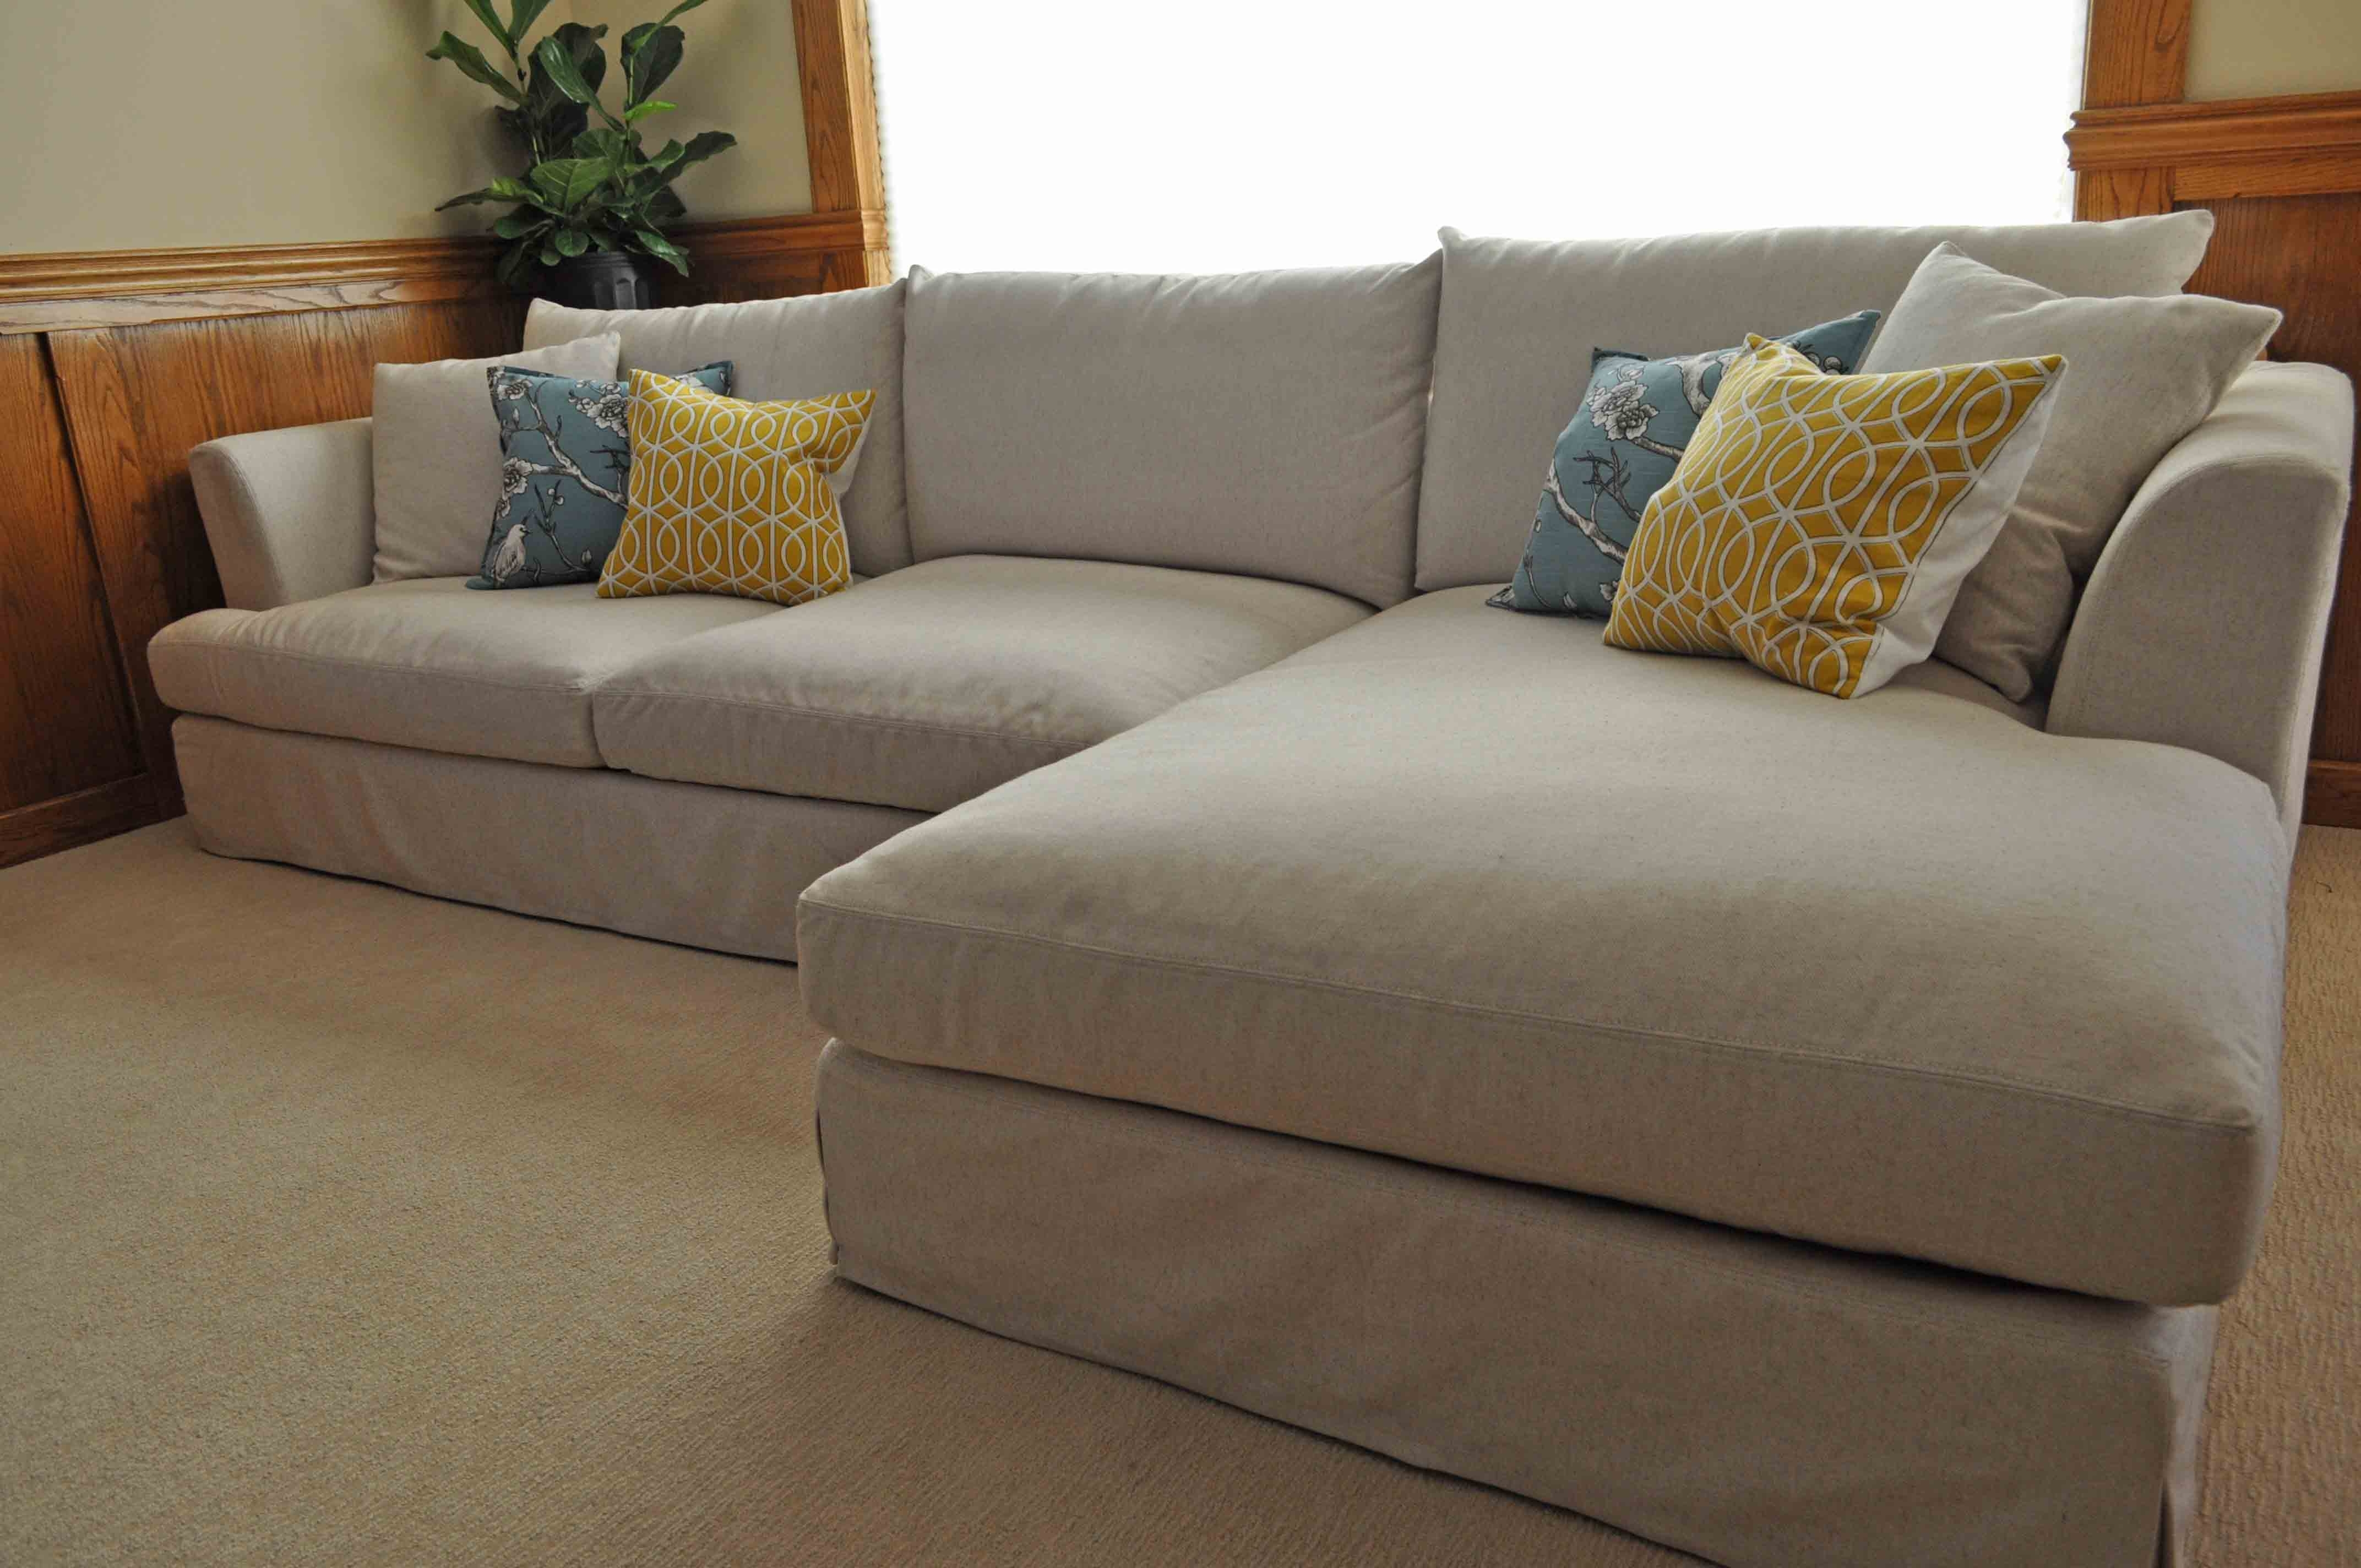 Perfect Comfy Sectional Sofas 41 On Office Sofa Ideas With Comfy Intended For Comfy Sectional Sofas (View 8 of 10)